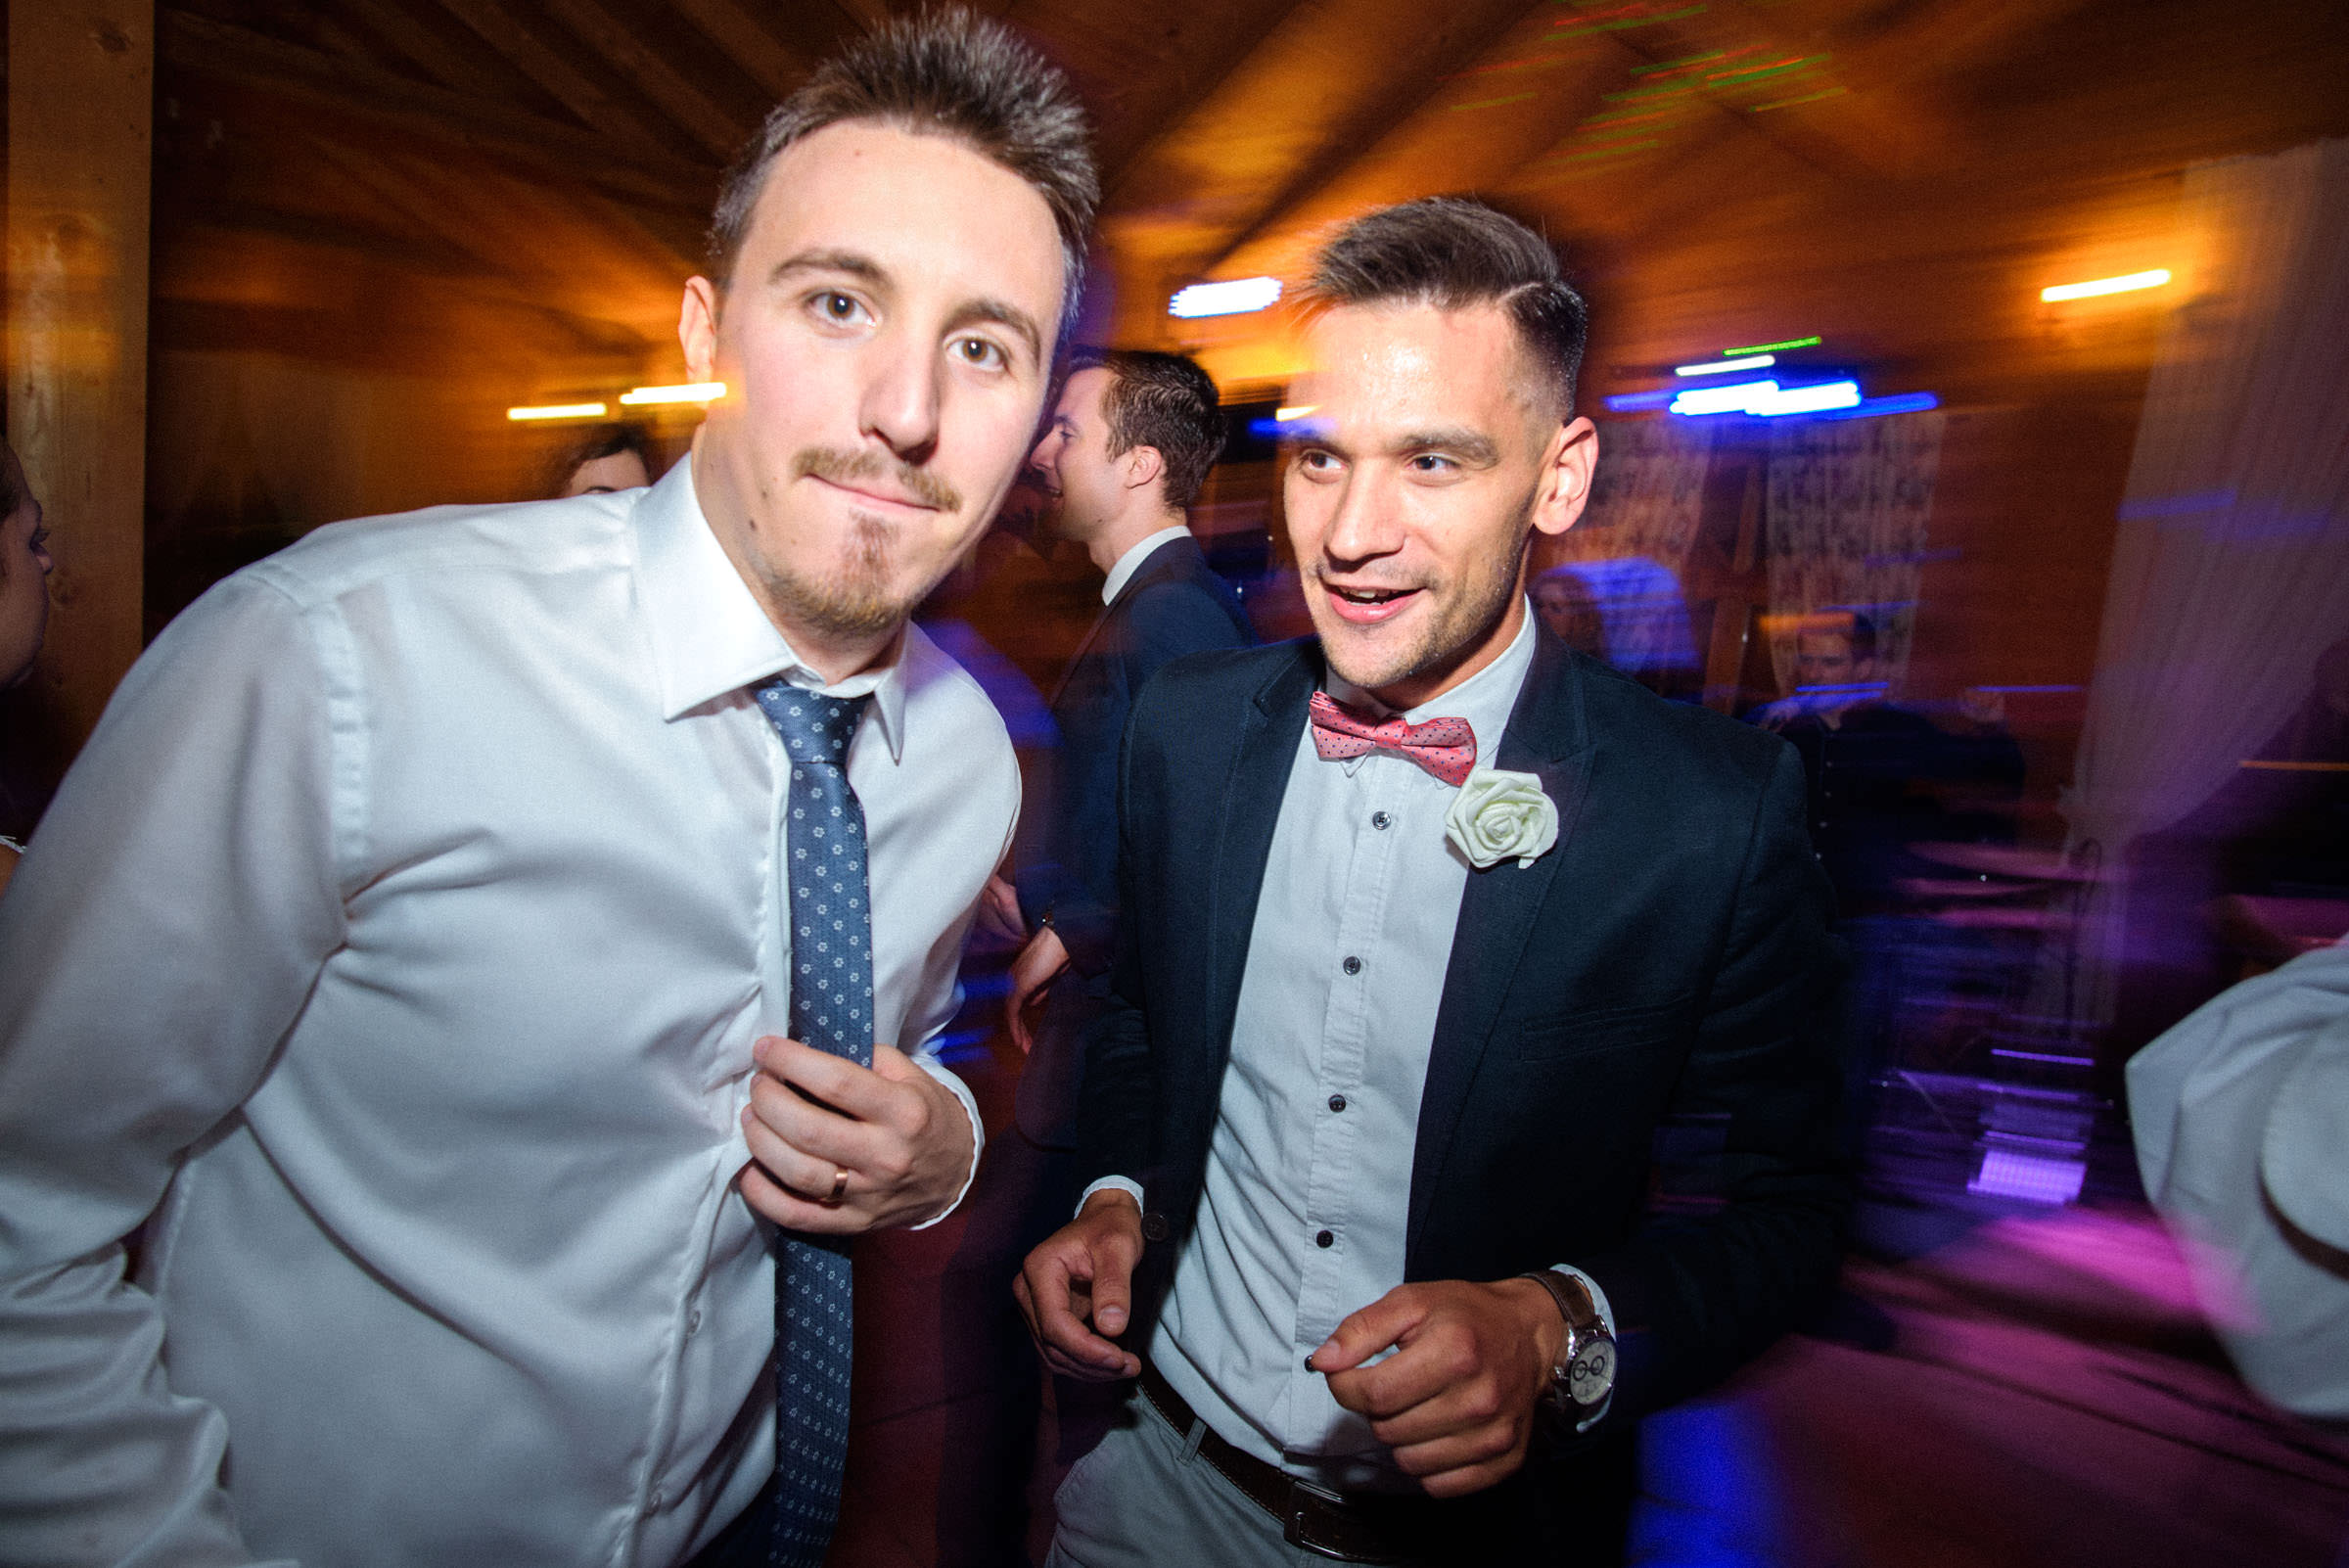 groom and his friend dancing to the music